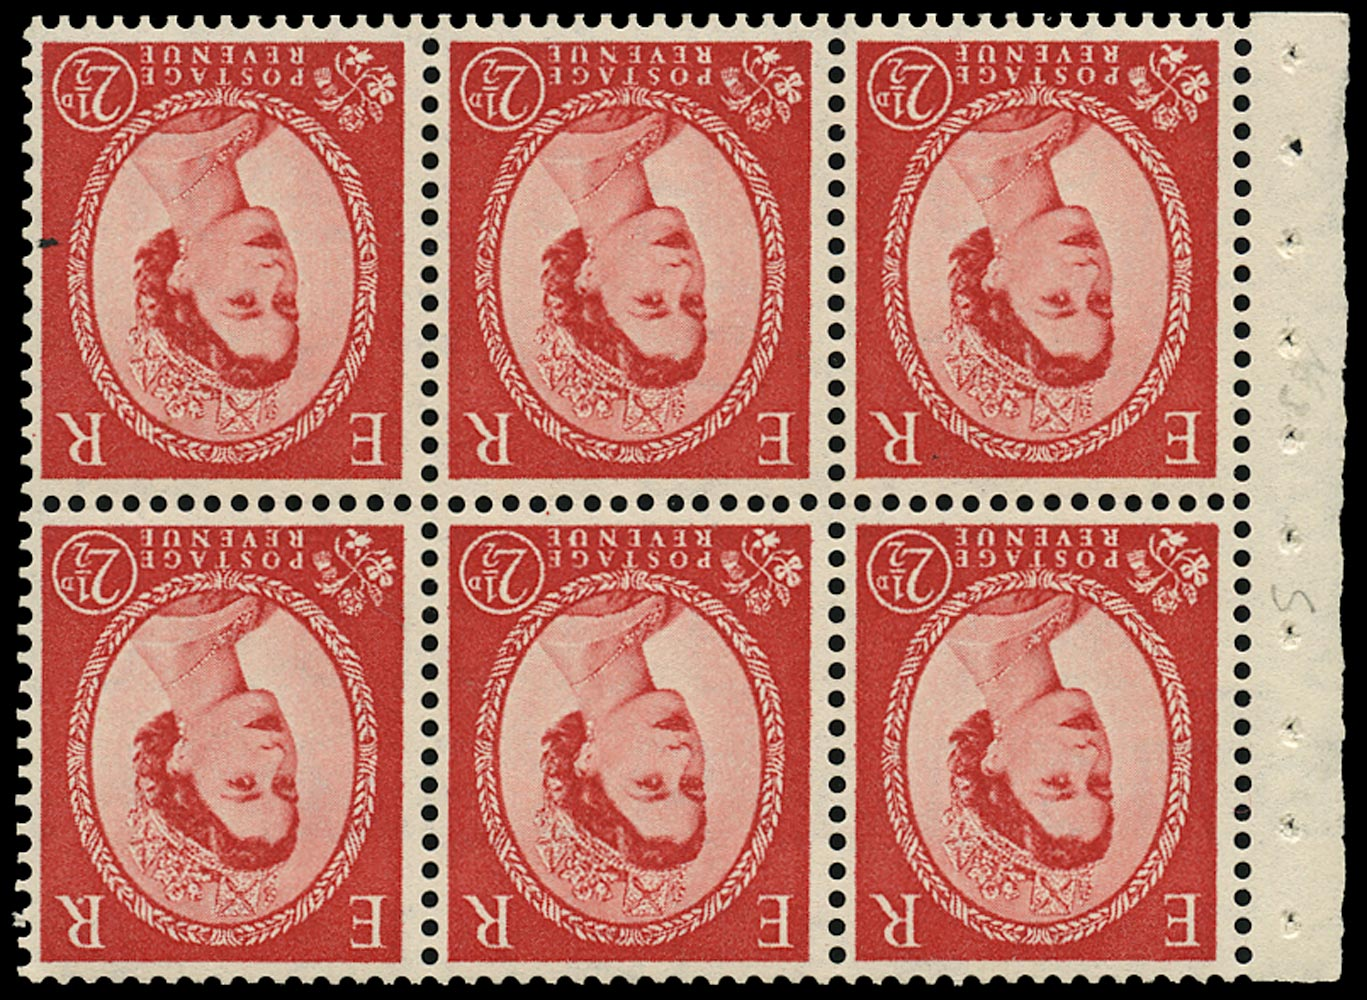 GB 1955  SG544blWi Booklet pane - Dotted 'R' flaw variety